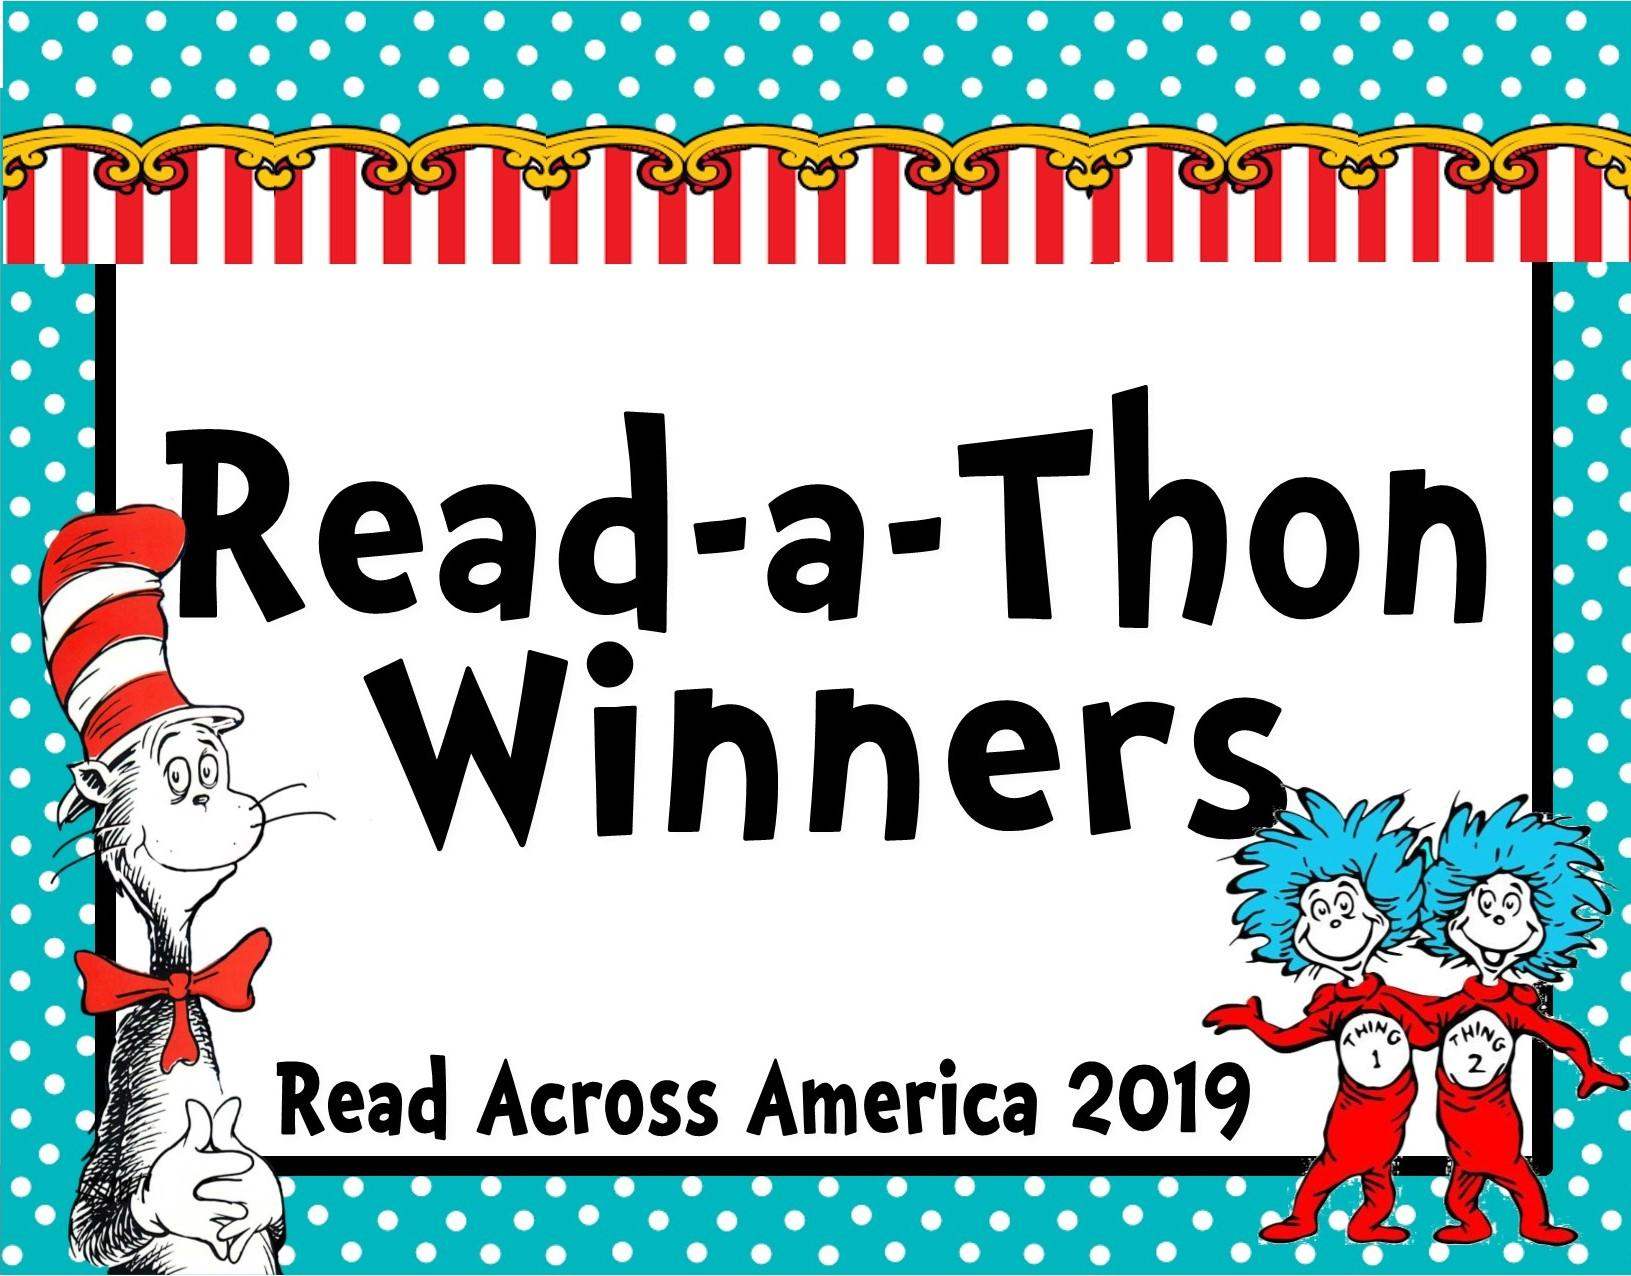 Image of Read-a-Thon winners logo